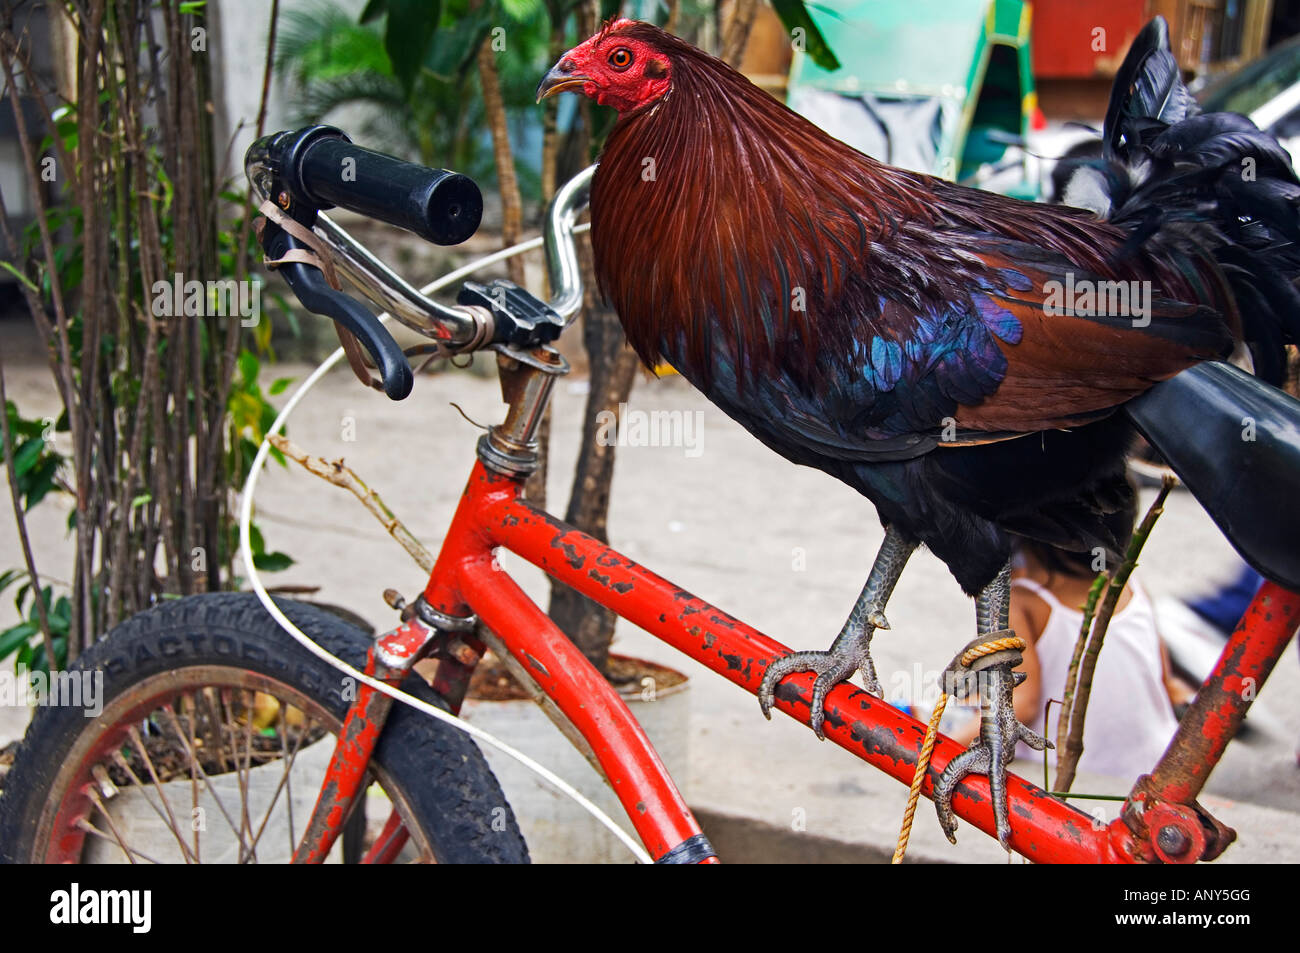 Philippines, Luzon, Manila. Rooster standing on bicycle frame Stock ...